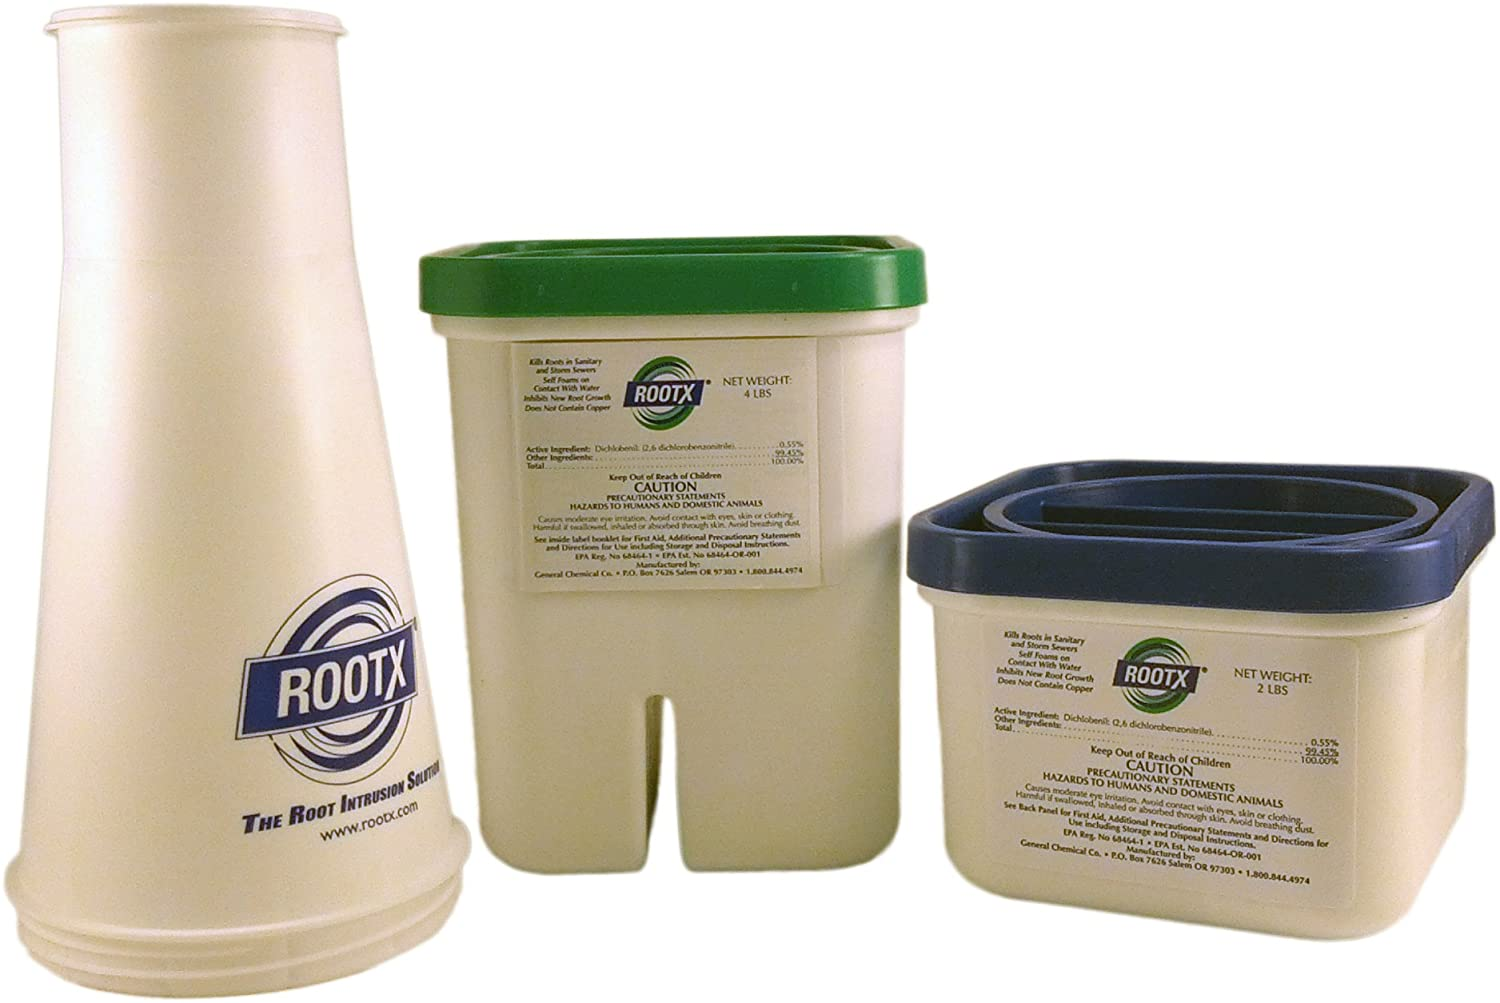 ROOTX The Root Intrusion Solution Kit One 4 Pound Container and One 2 Pound Container Plus